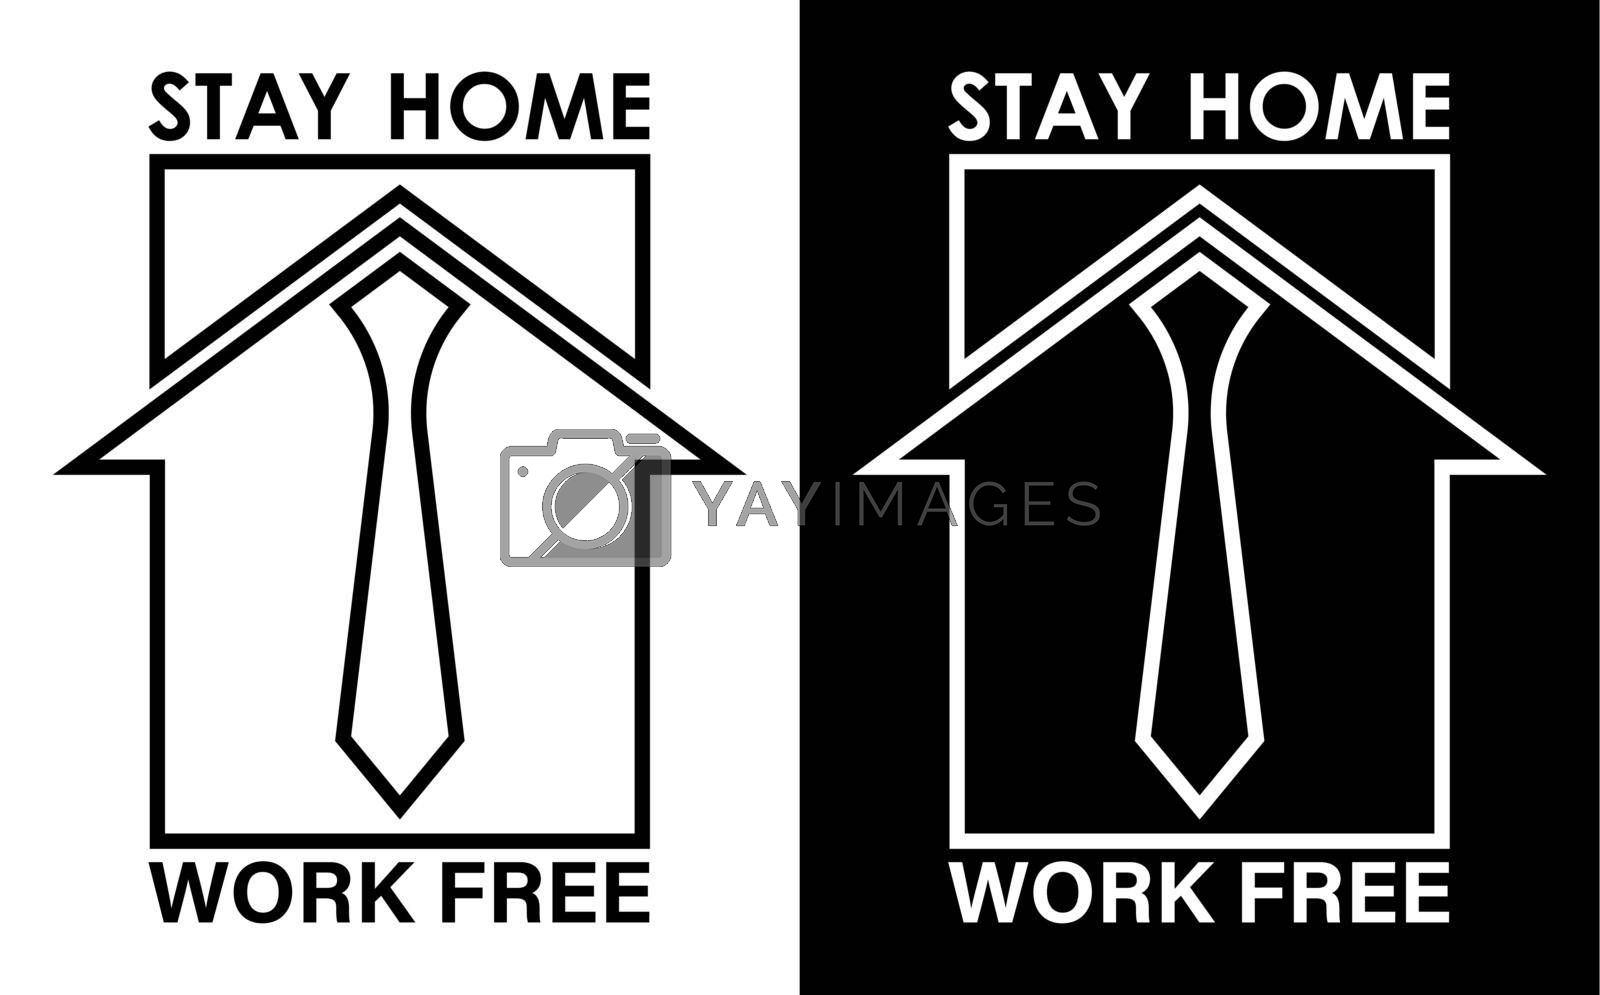 Royalty free image of original logo, icon. Remote work from home during quarantine, stay home. Free work, home business. Isolated vector on white background by RNko